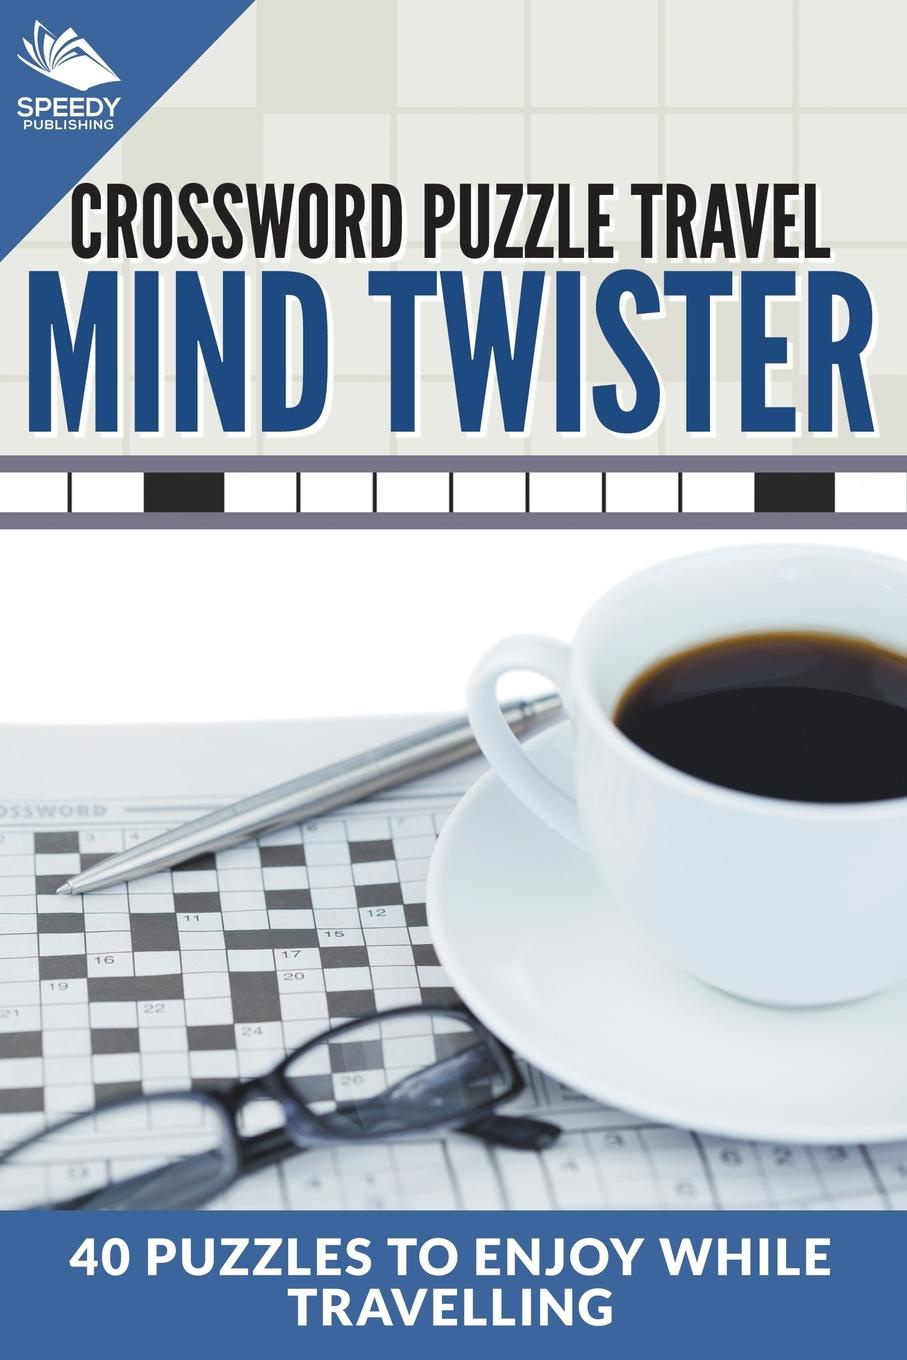 Speedy Publishing LLC. Crossword Puzzle Travel. Mind Twister: 40 Puzzles To Enjoy While Travelling